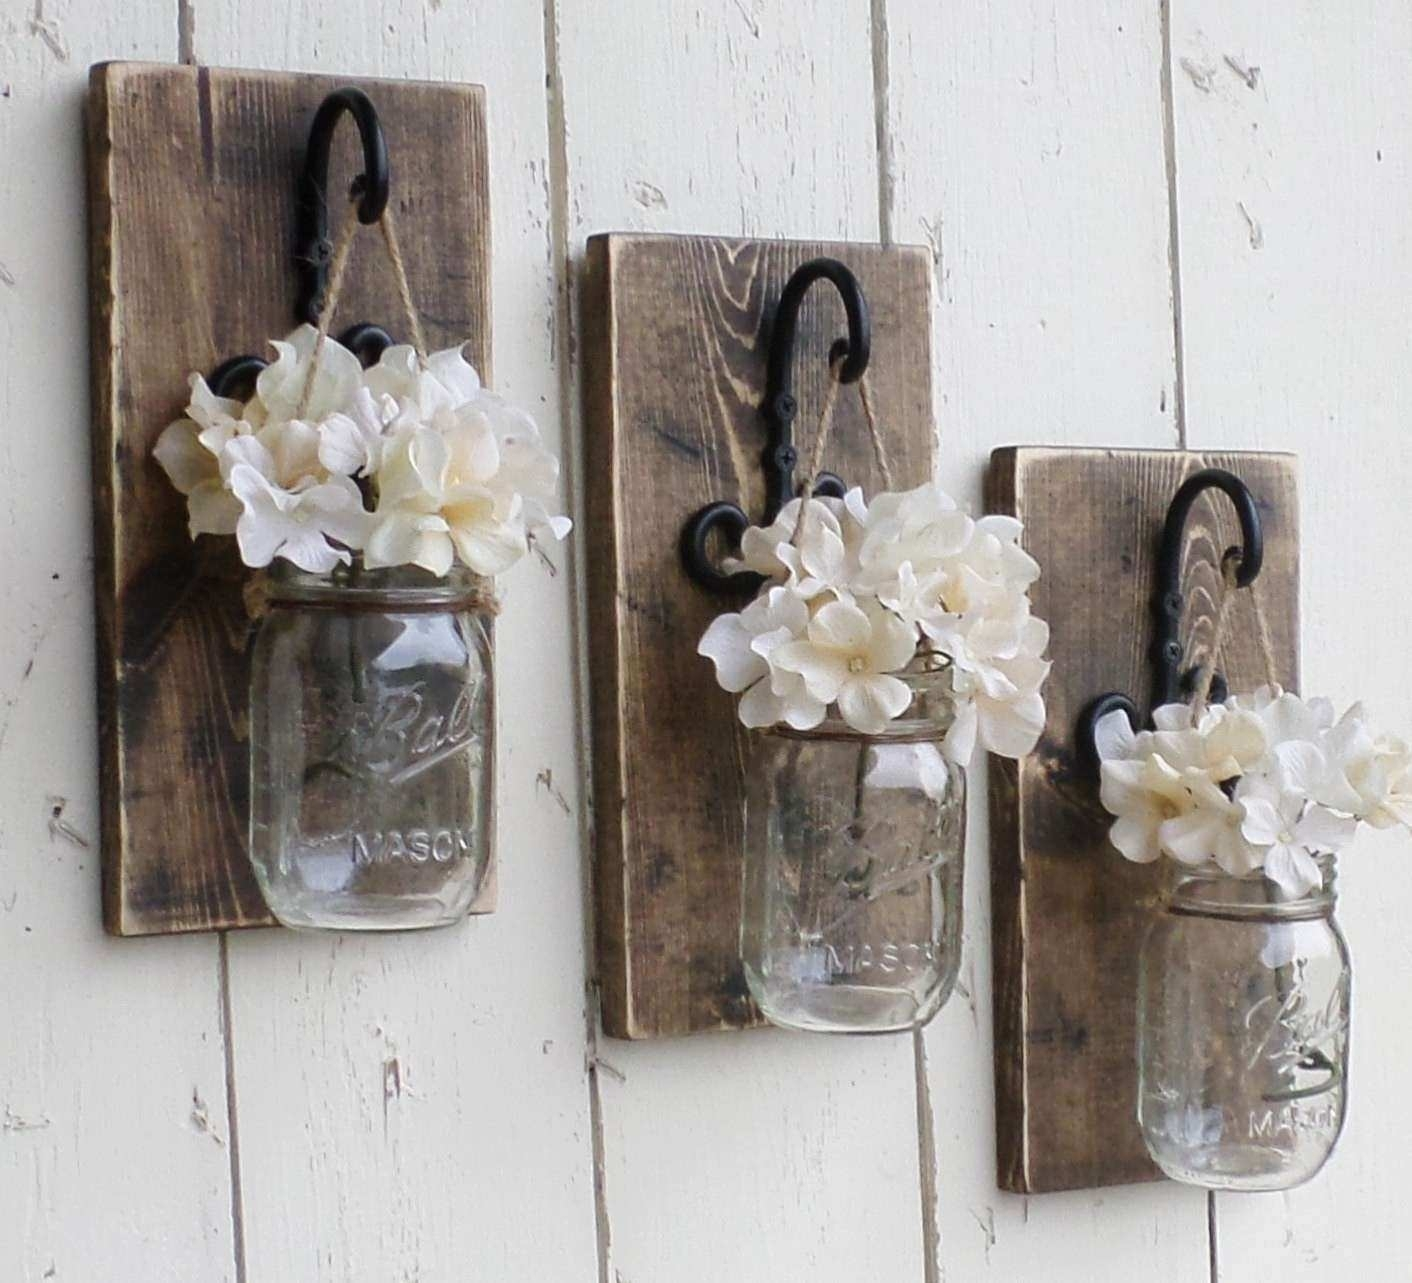 Mason Jar Wall Art Awesome New Rustic Farmhouse Wood Wall Decor 3 pertaining to Mason Jar Wall Art (Image 11 of 20)